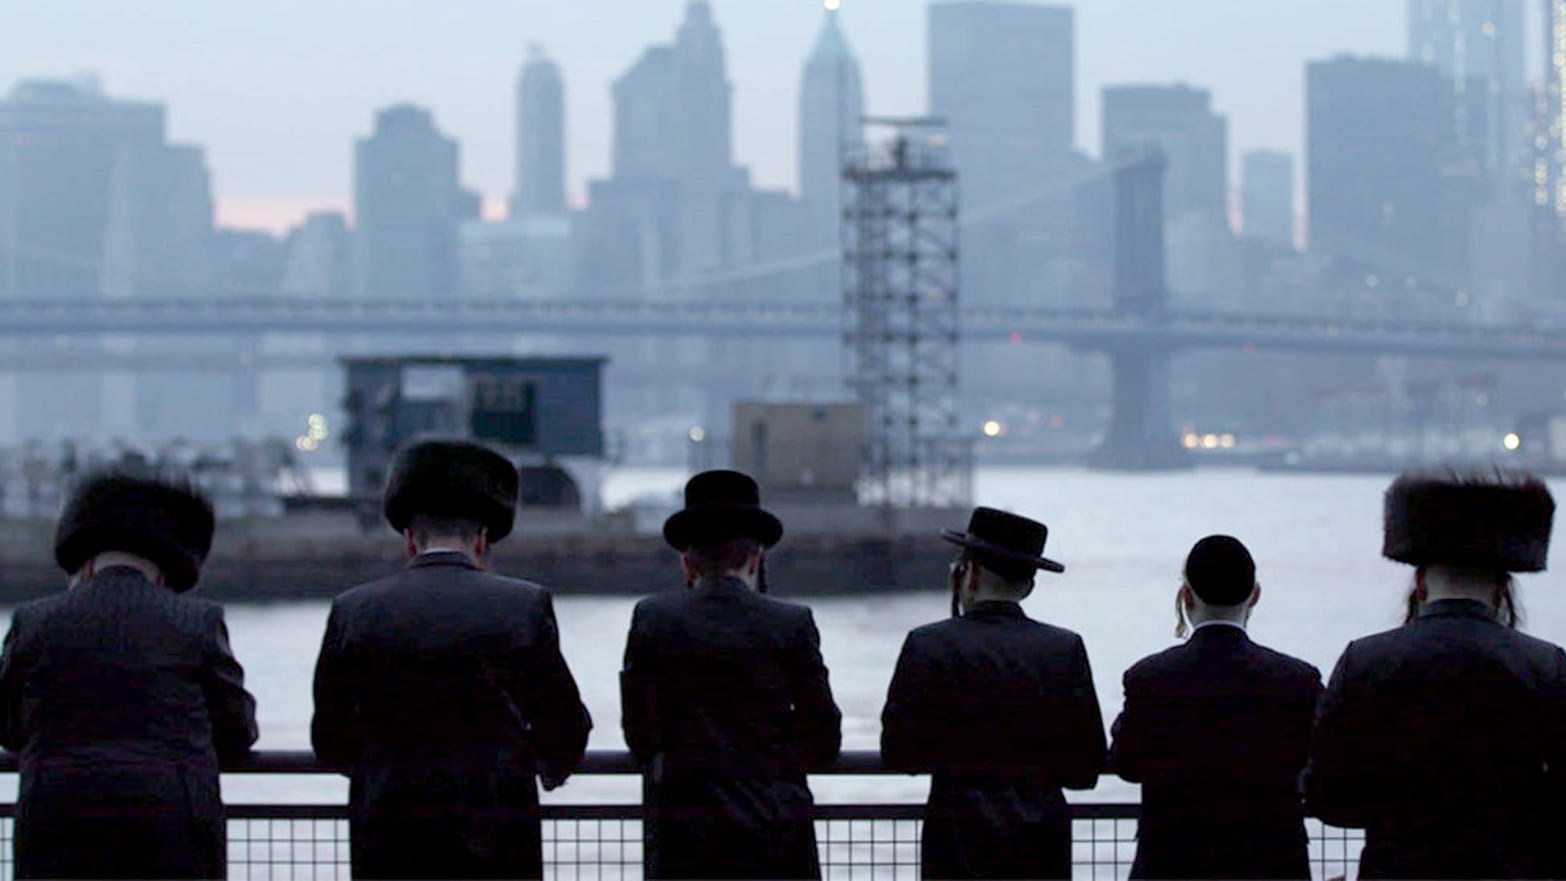 The Terror of Escaping New York's Hasidic Community